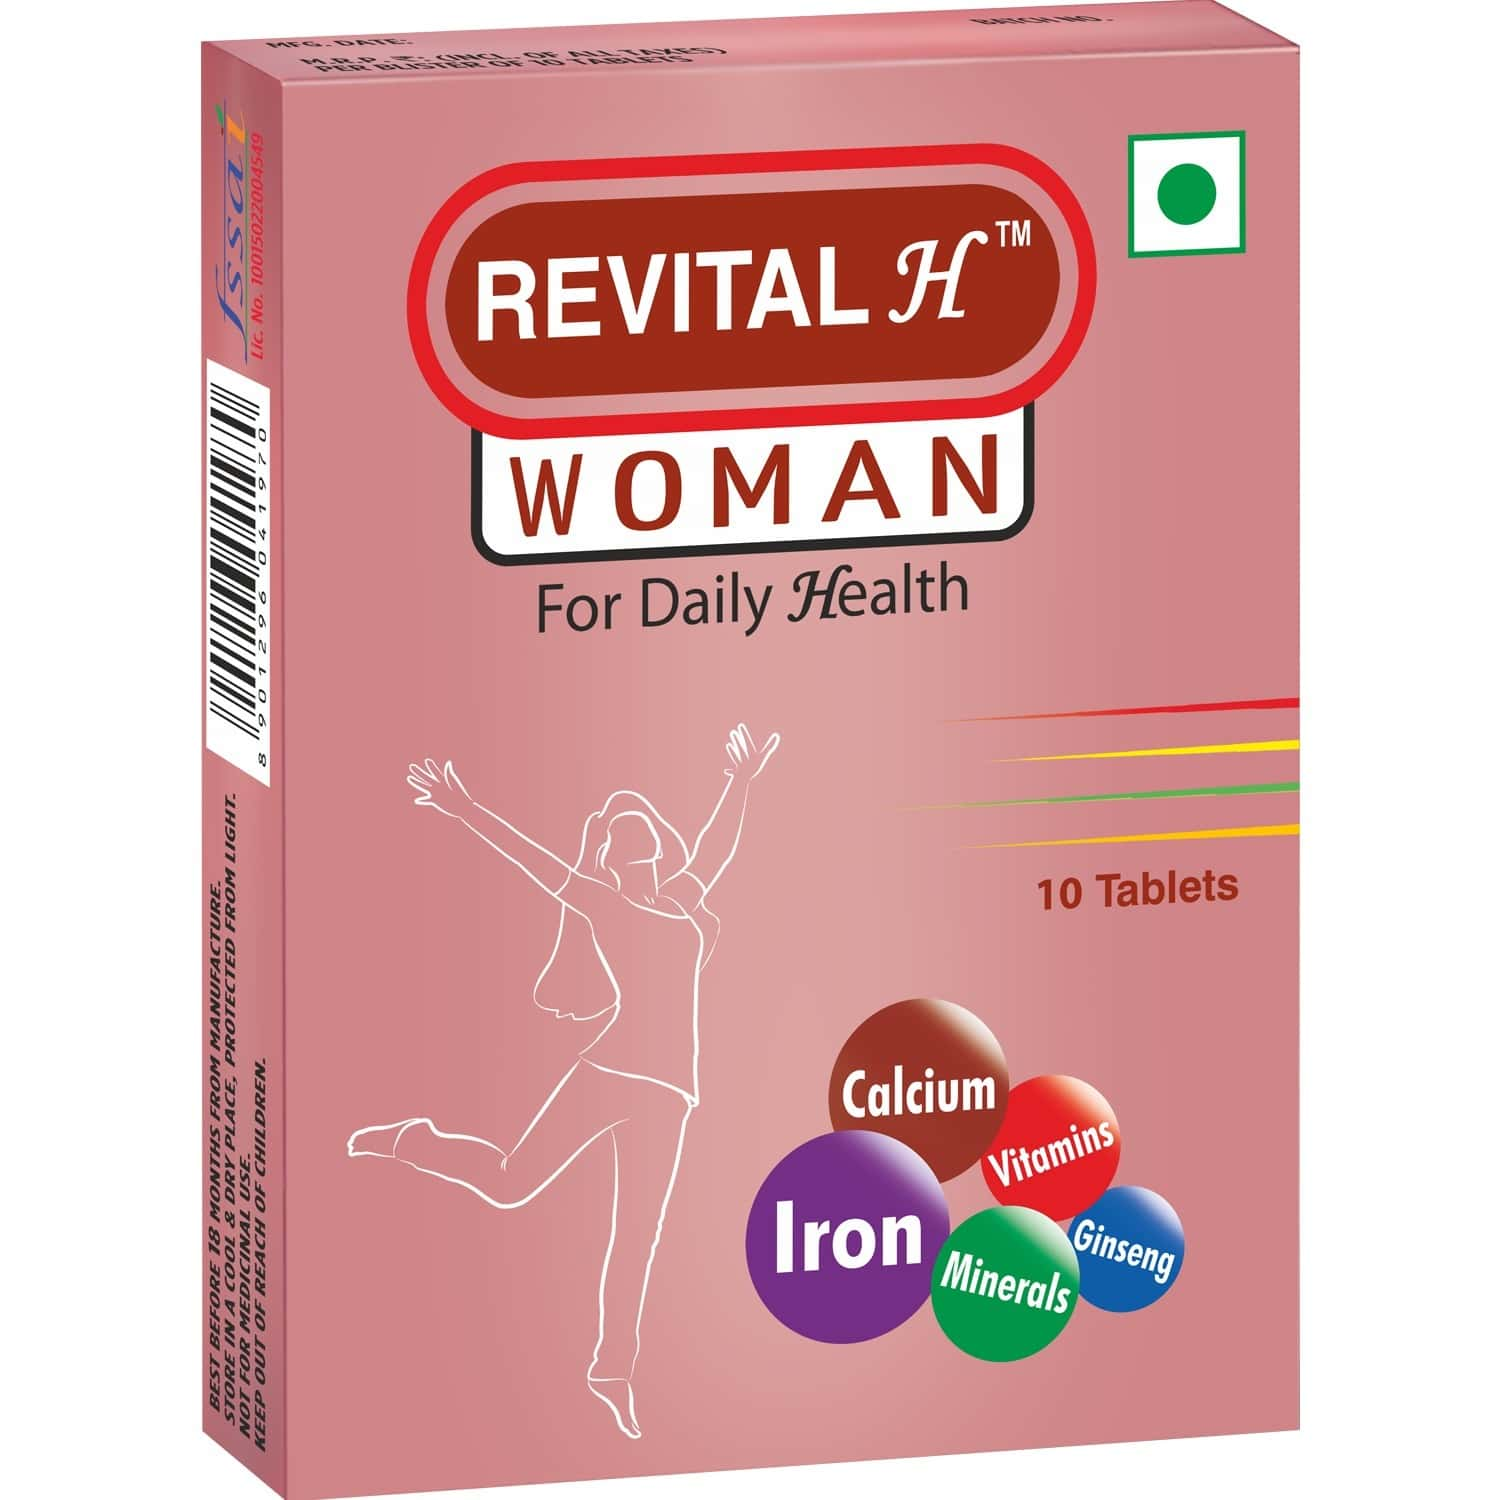 Revital H Woman Health Supplement Tablets Strip Of 10